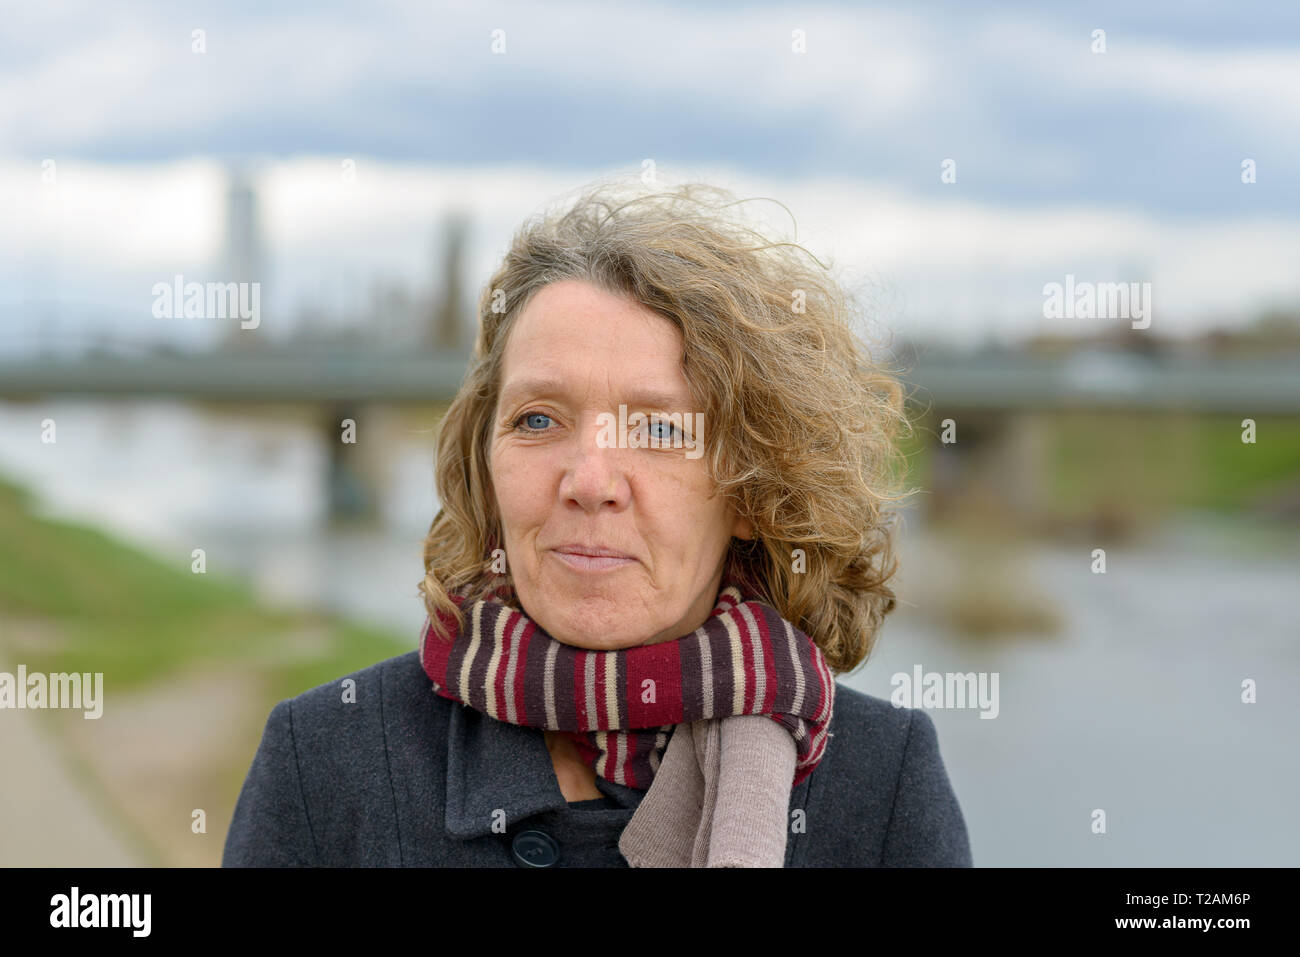 Smiling attractive woman with tousled curly hair wearing a warm winter coat and scarf posing outdoors on a grey day near a river - Stock Image